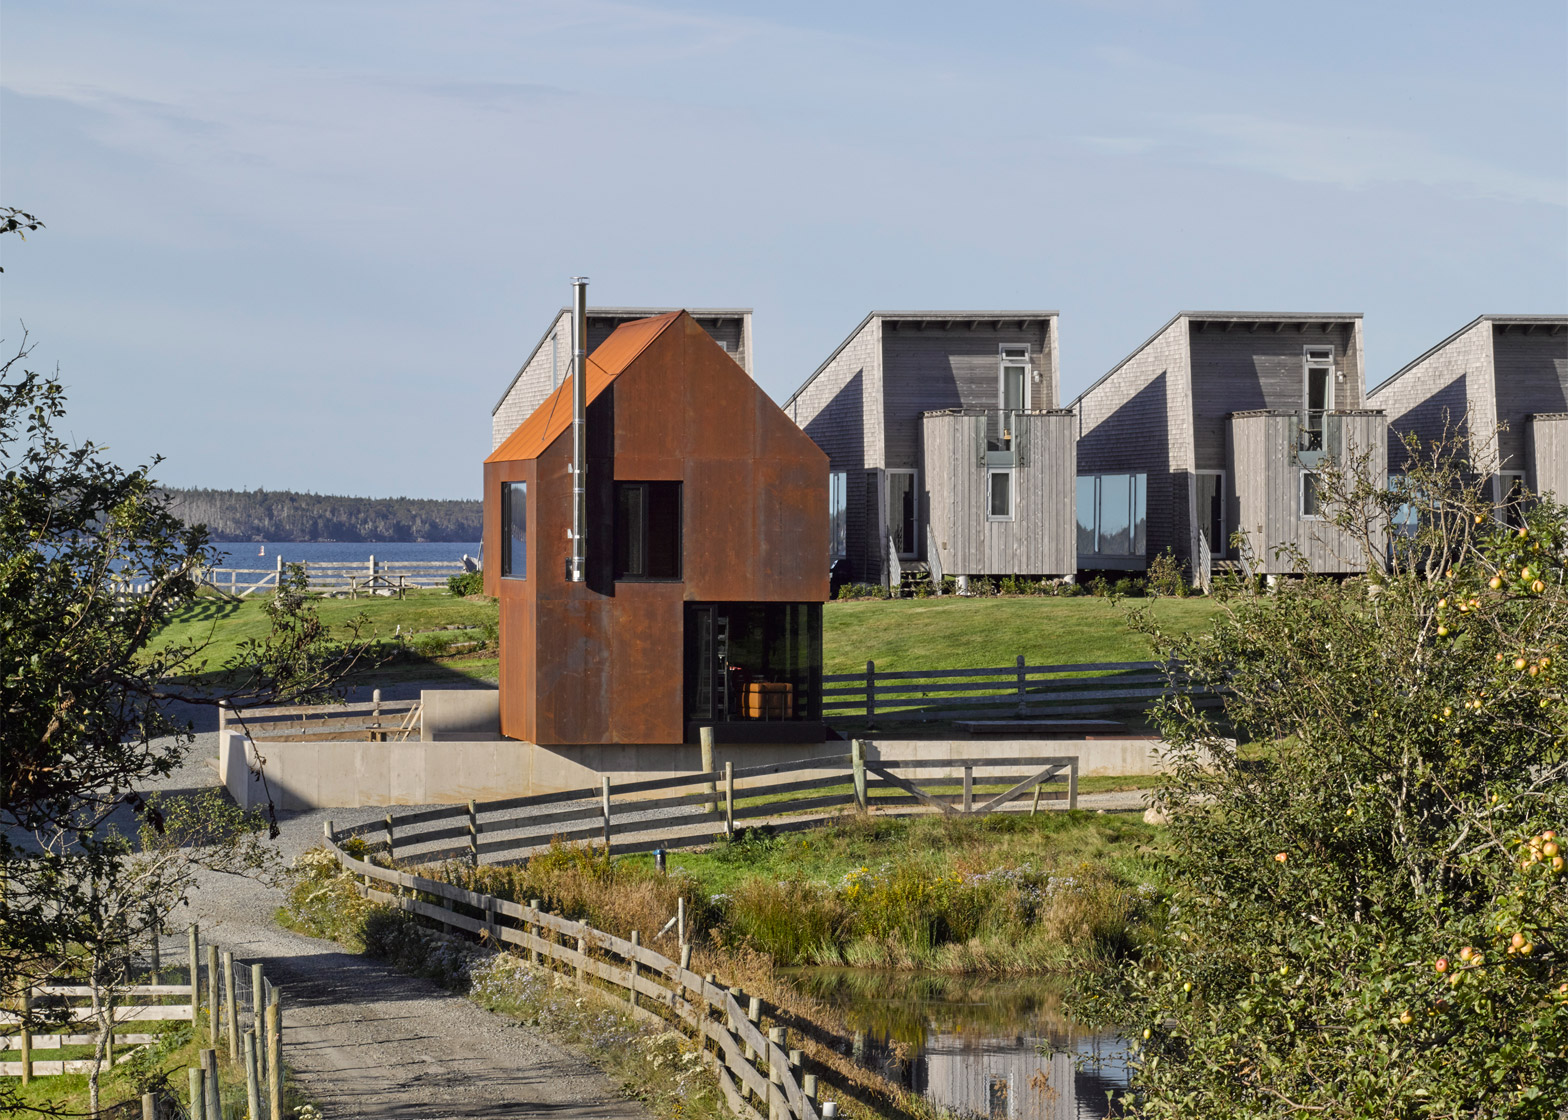 Enough house weathering steel cabin in Nova Scotia by Brian Mackay Lyons